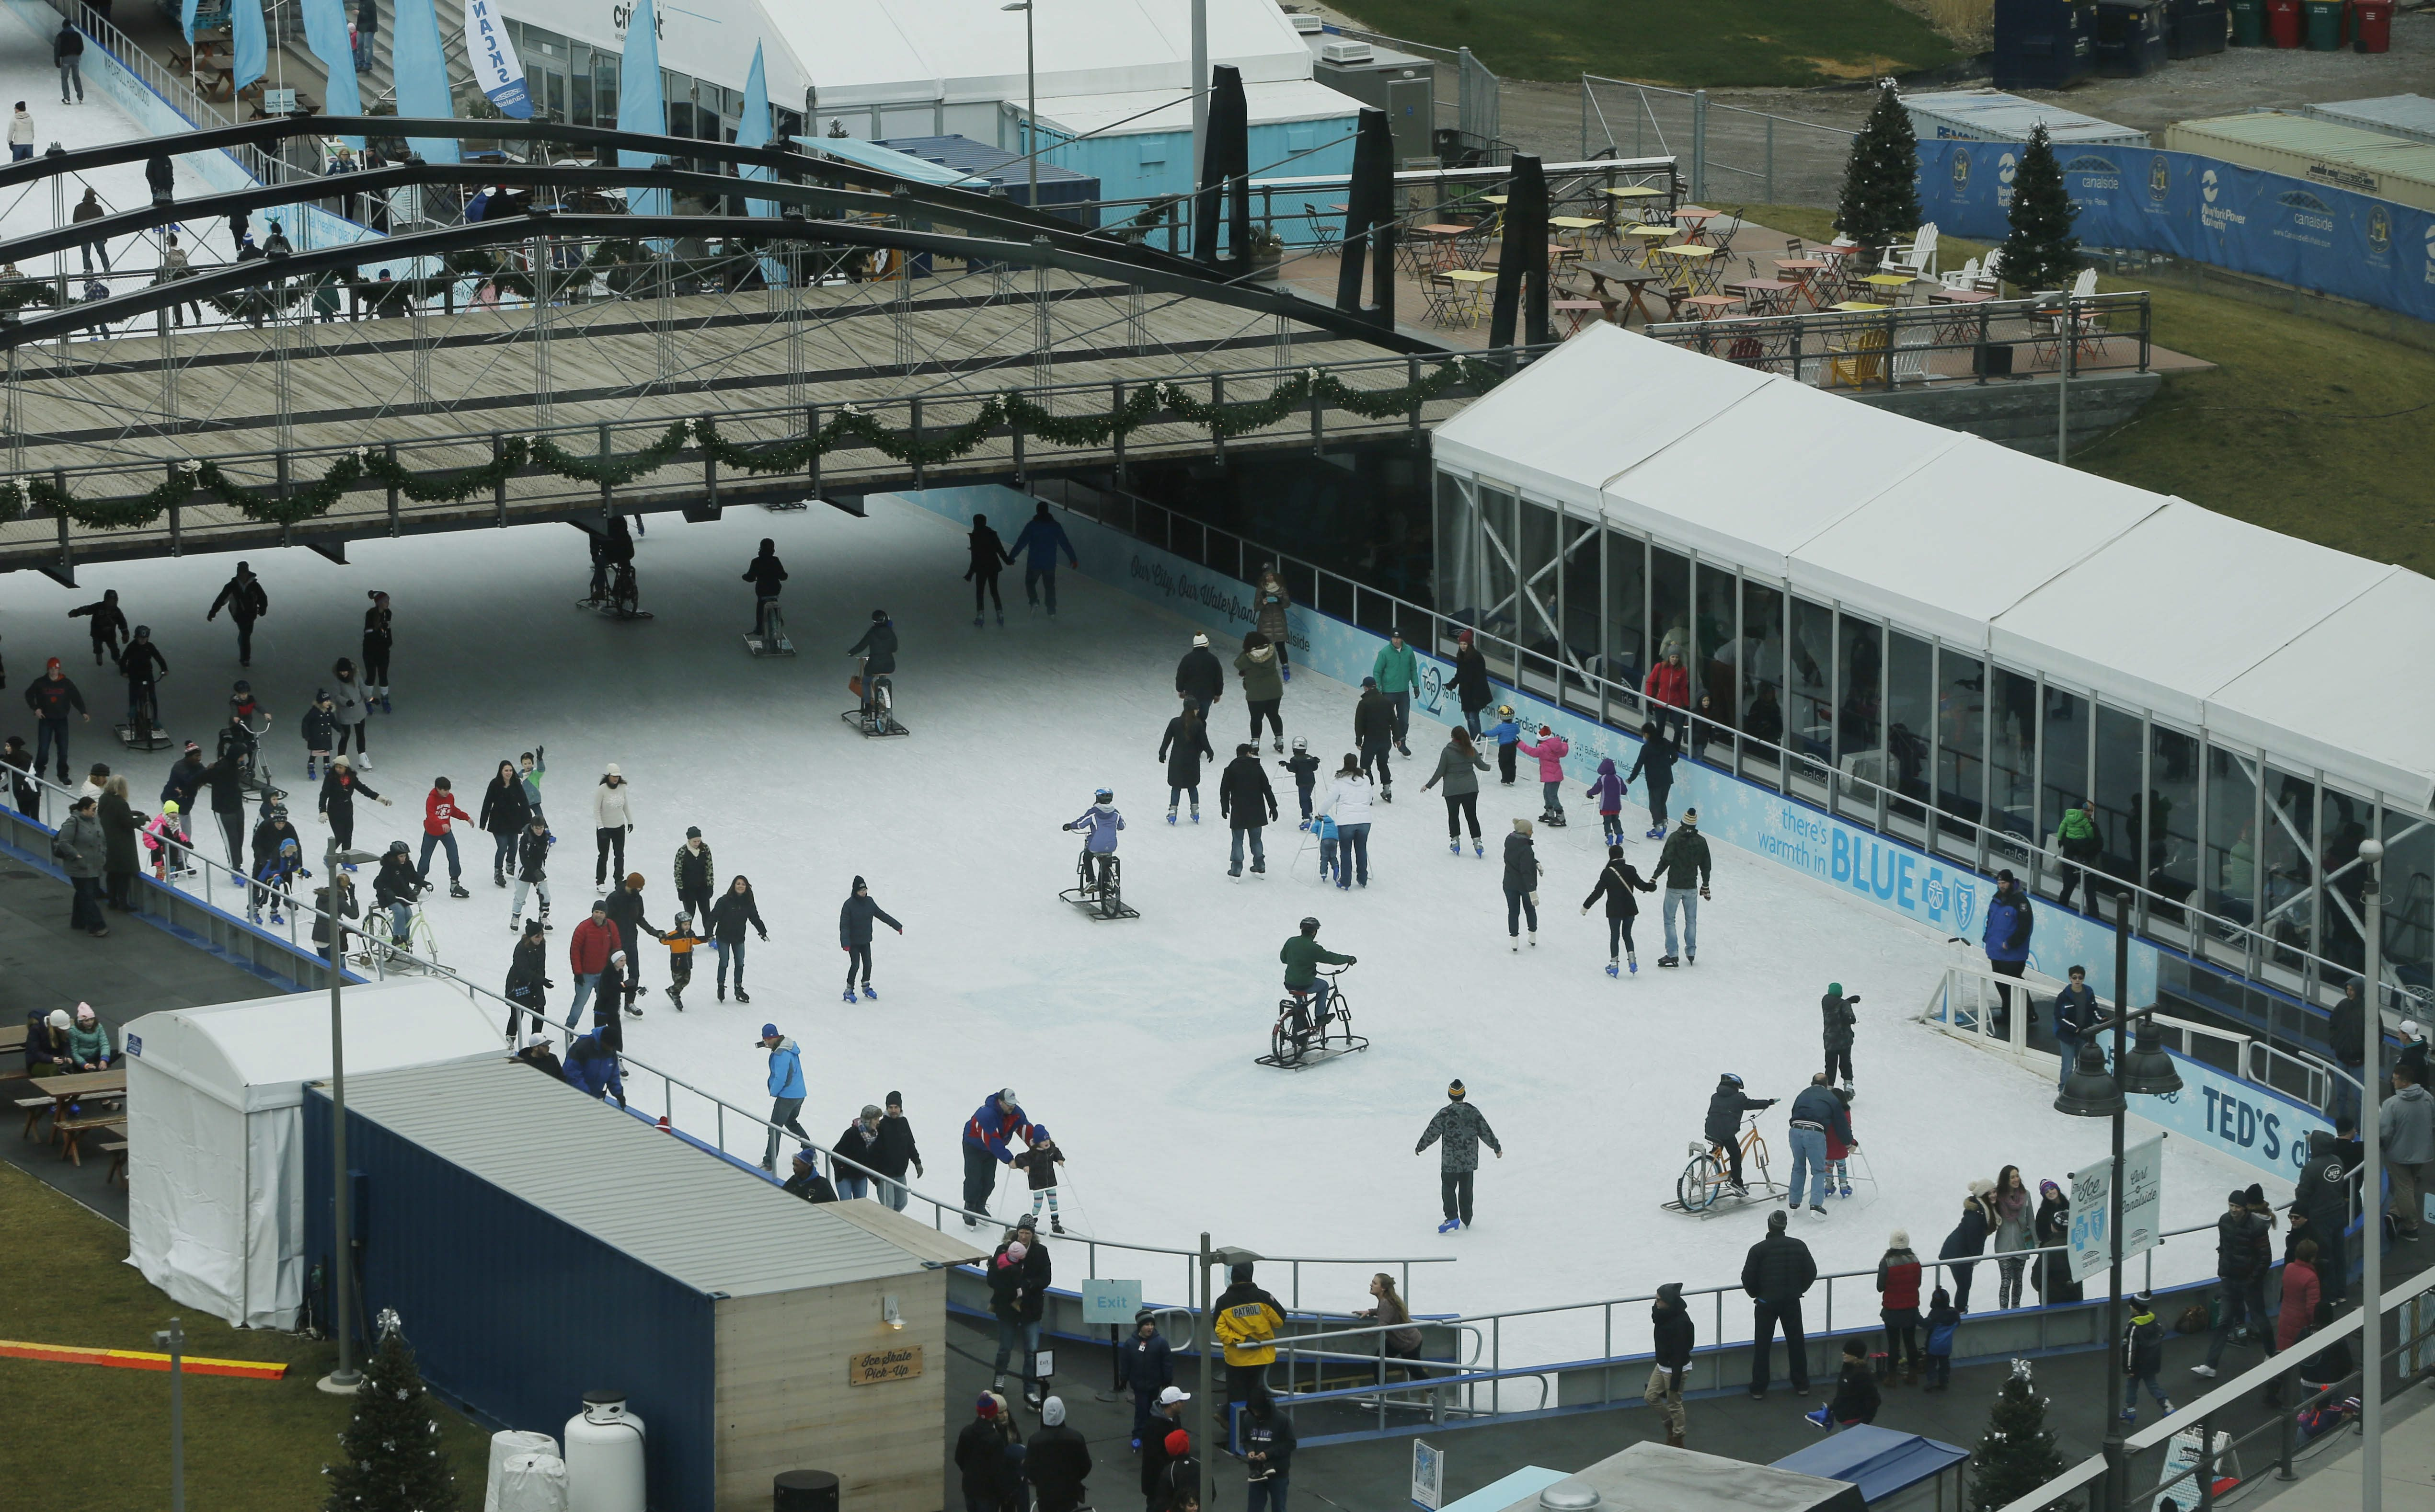 Canalside's ice rink draws people downtown during snow season. (Derek Gee/News file photo)